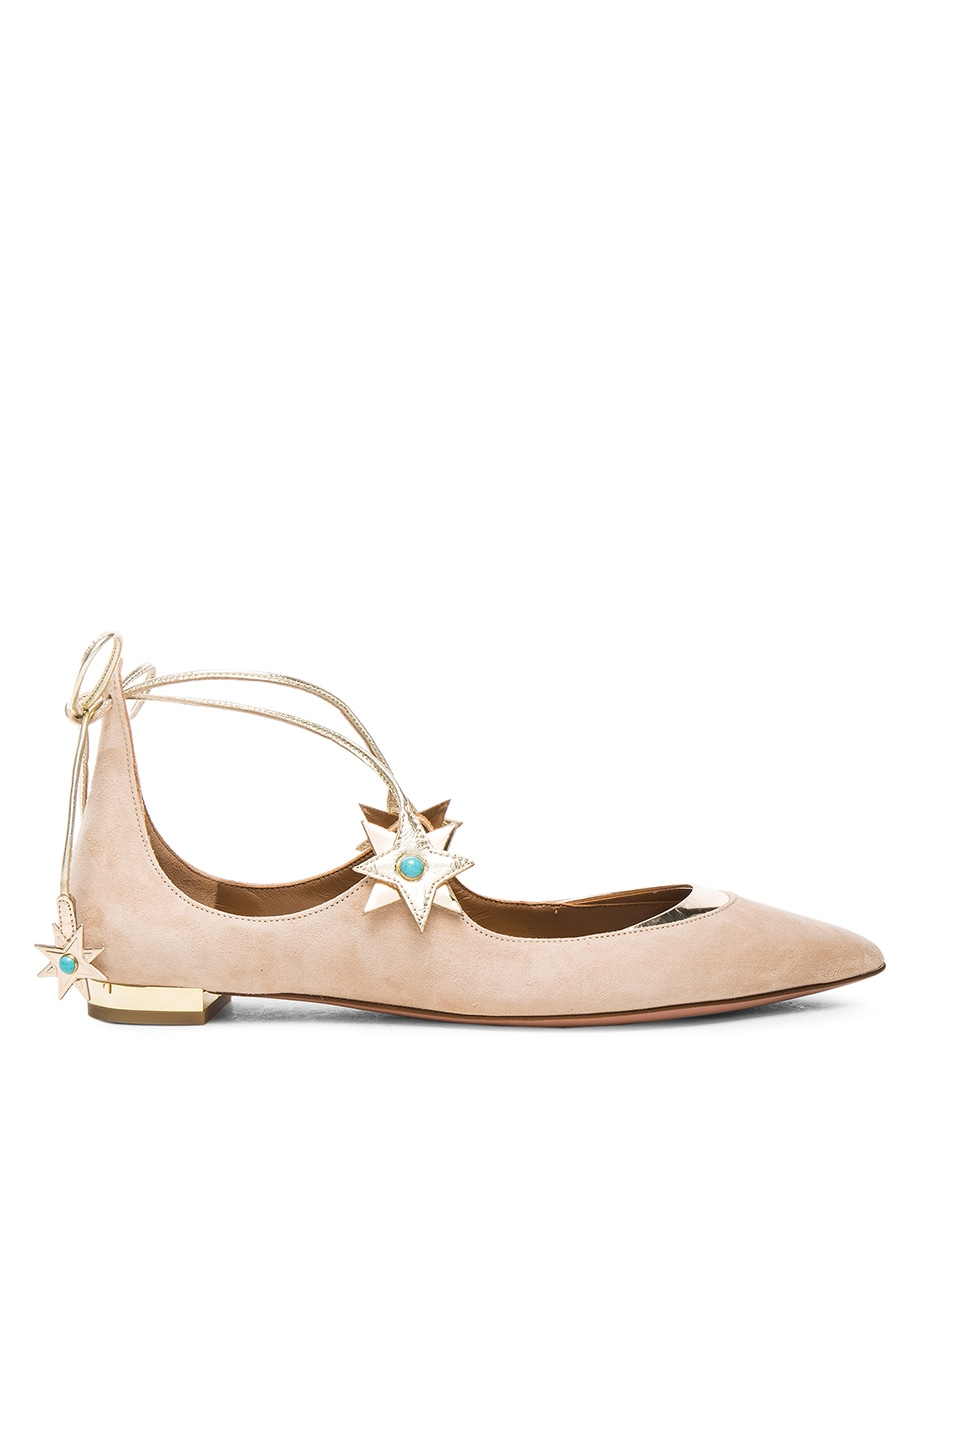 Image 1 of Aquazzura x Poppy Delevingne Midnight Suede Ballet Flats in Light Gold